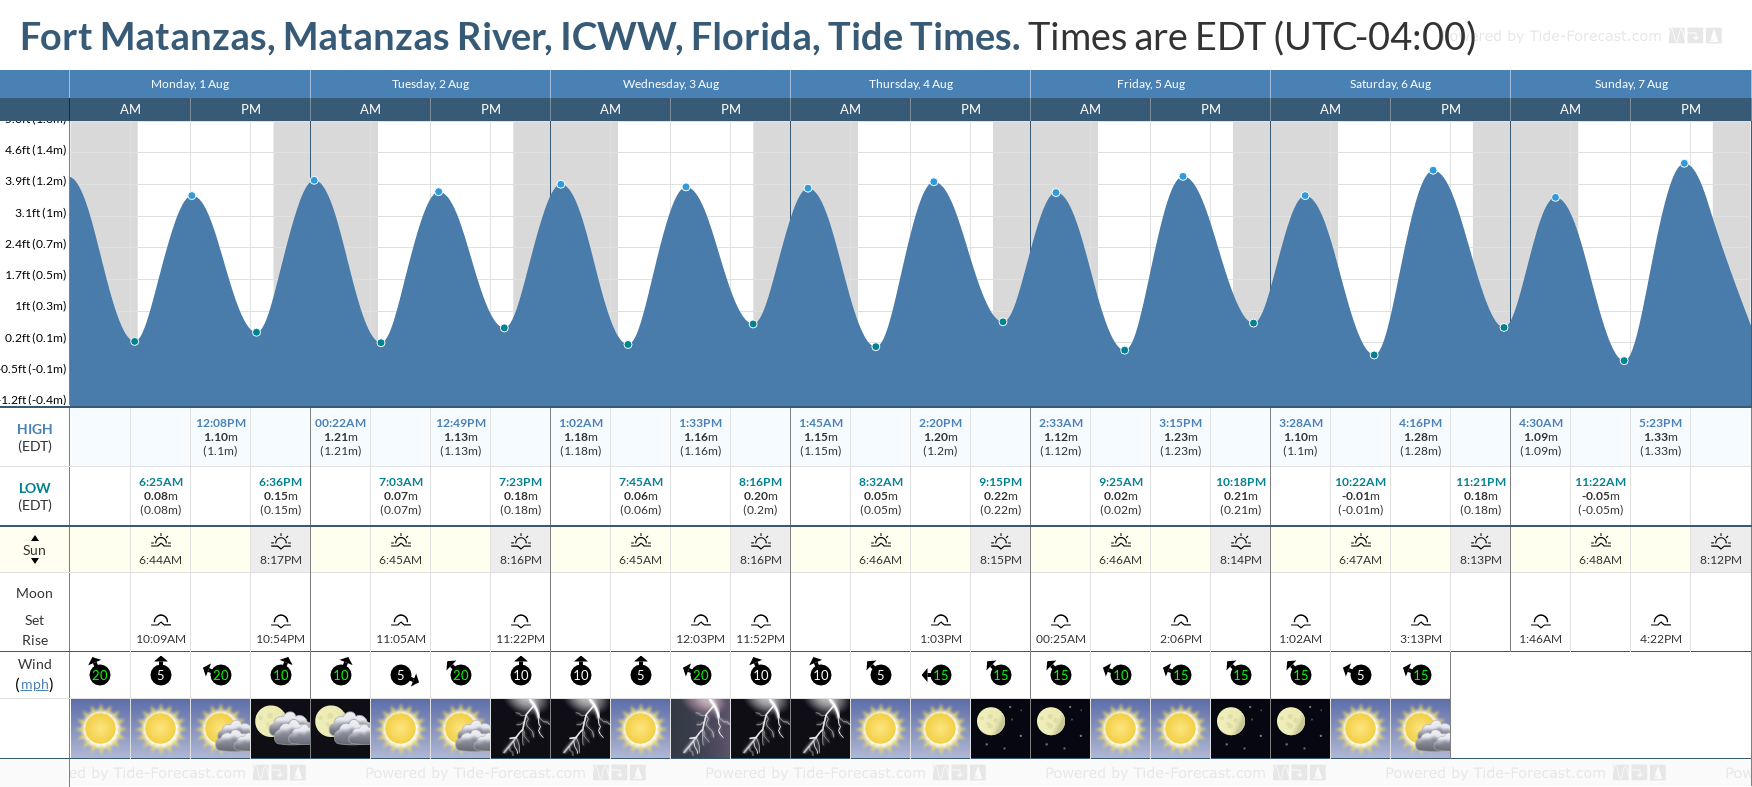 Fort Matanzas, Matanzas River, ICWW, Florida Tide Chart including high and low tide tide times for the next 7 days